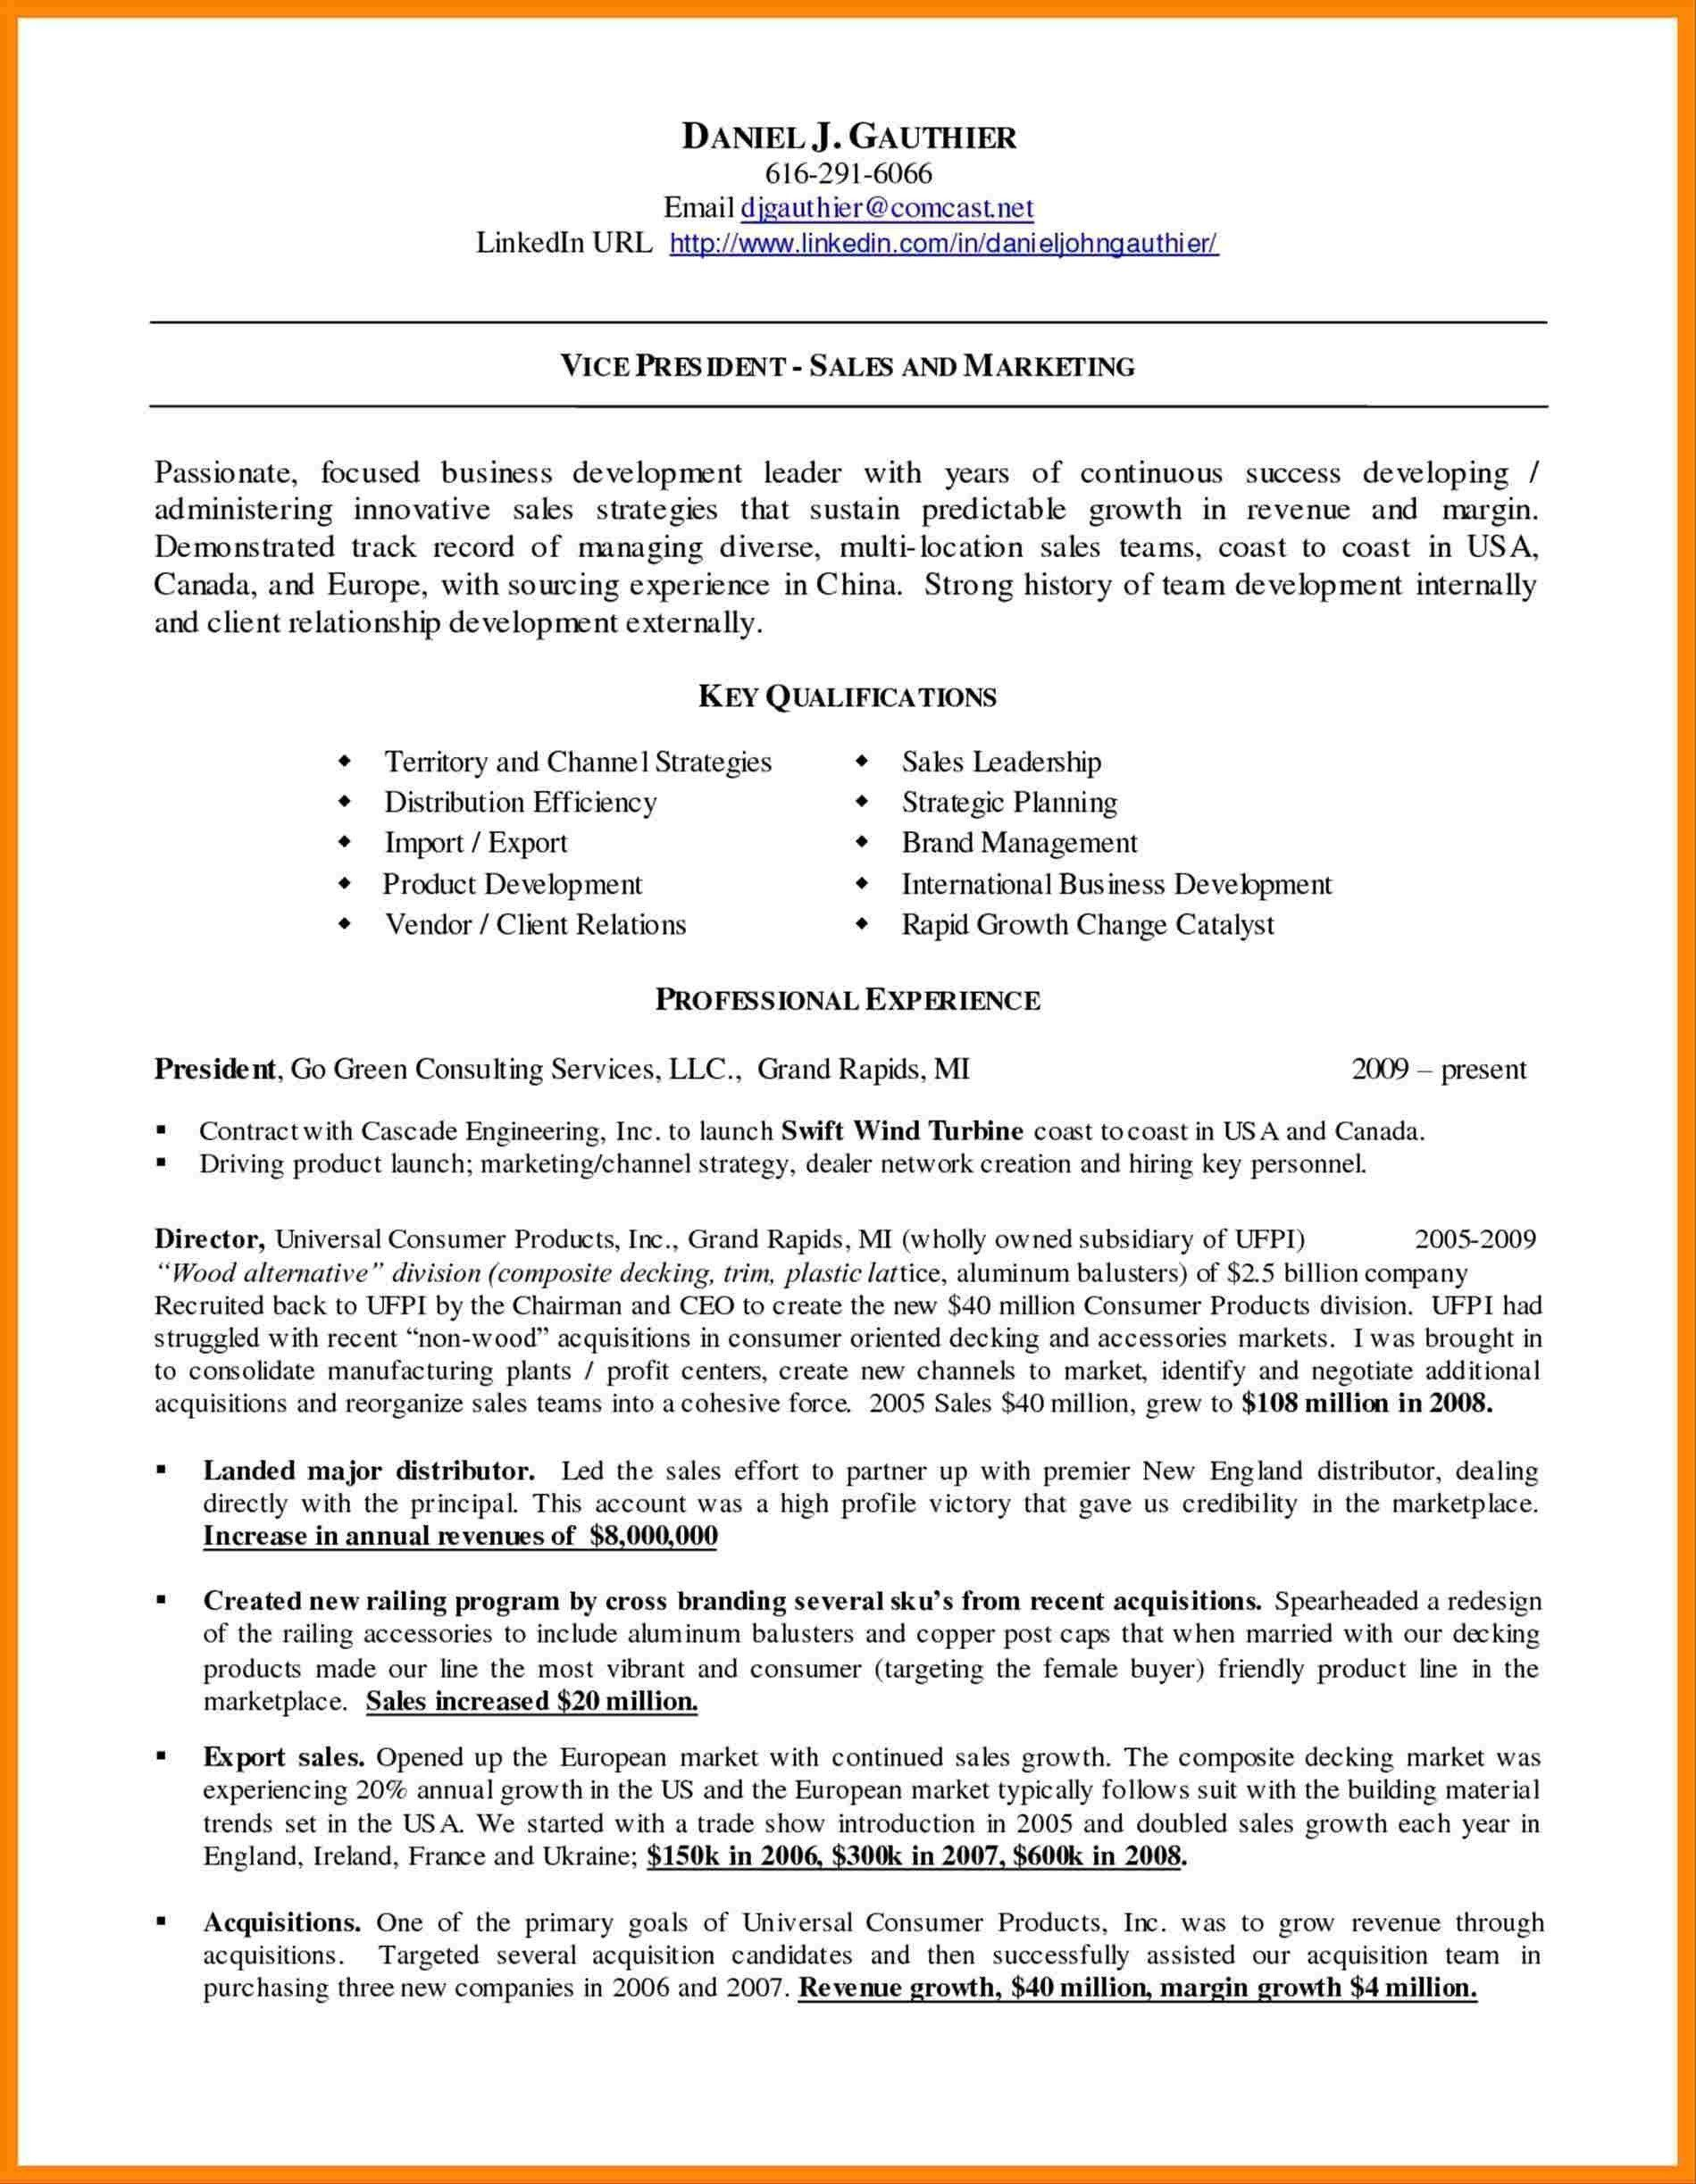 linkedin link on resume category teacher template free examples with url easy headline Resume Resume Examples With Linkedin Url